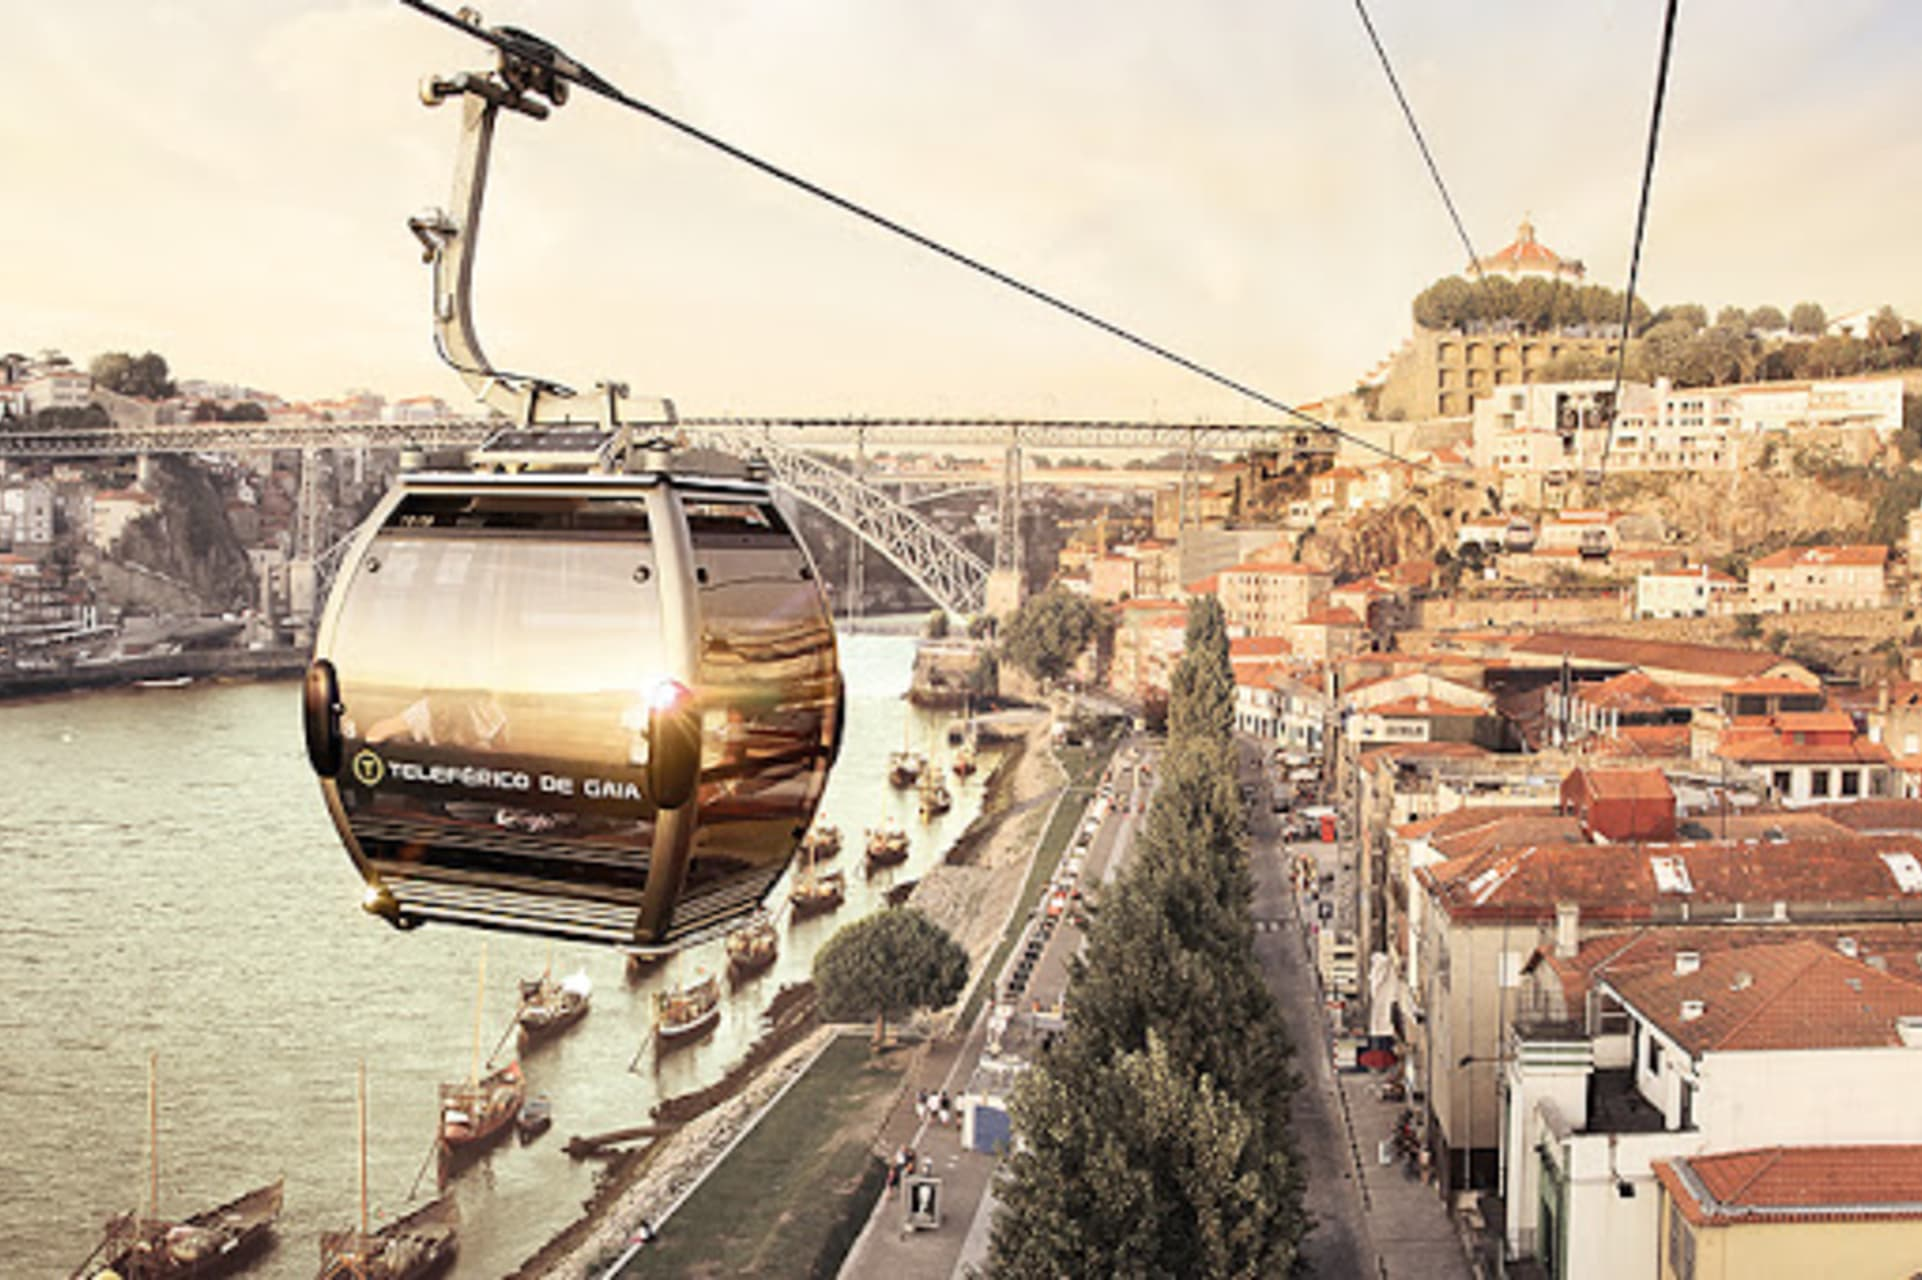 Gaia - Let's Go on the Cable Car?